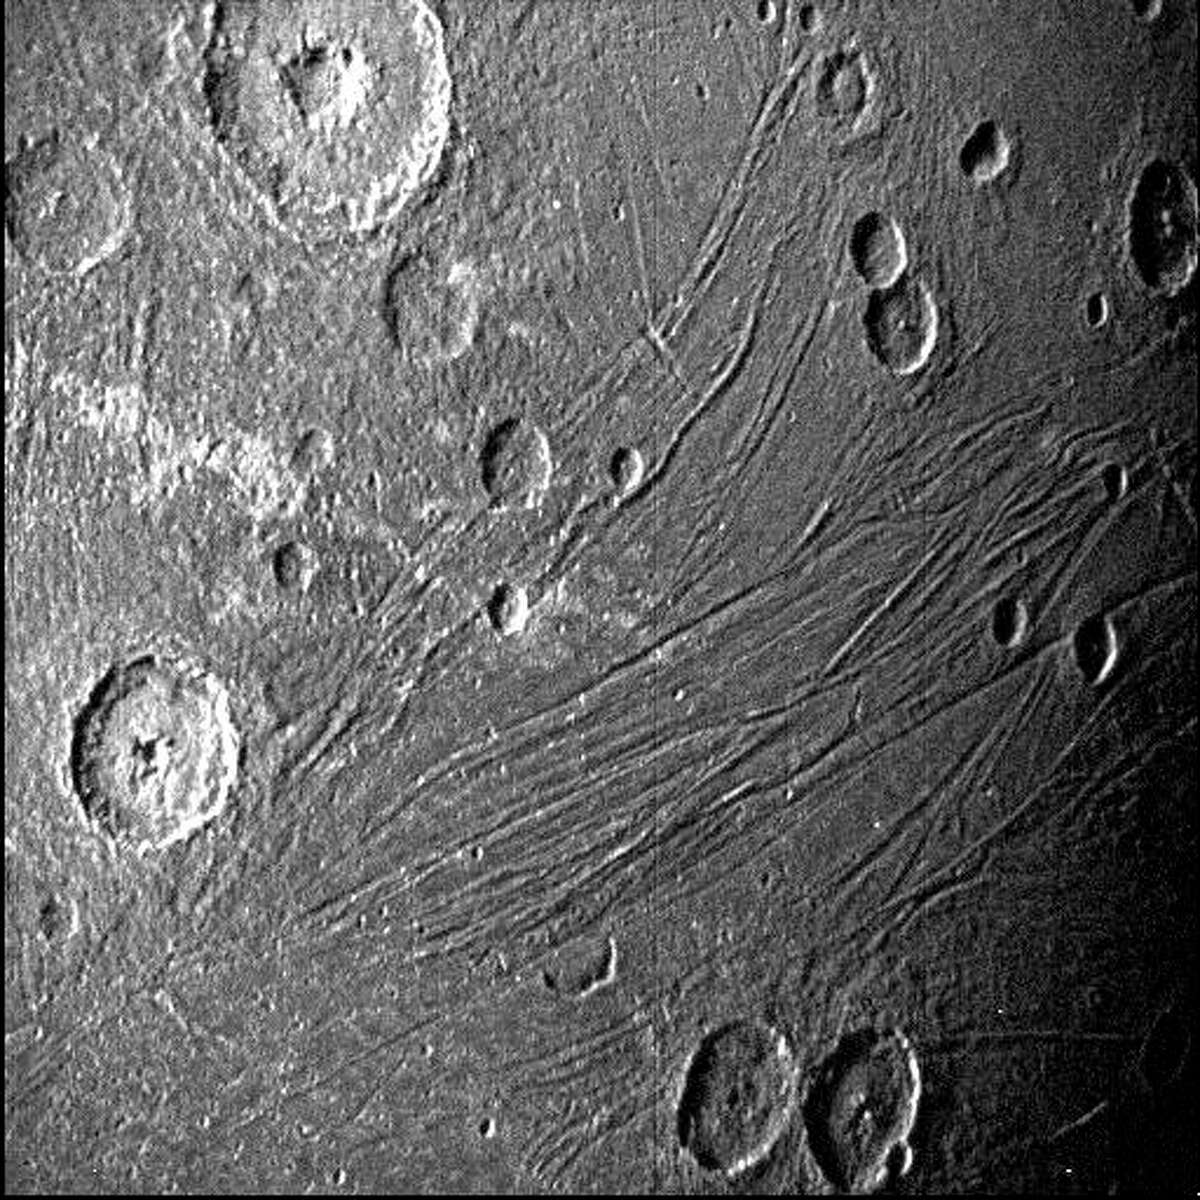 Juno, with instruments from Southwest Research Institute, captured images of Jupiter's moon Ganymede this month.